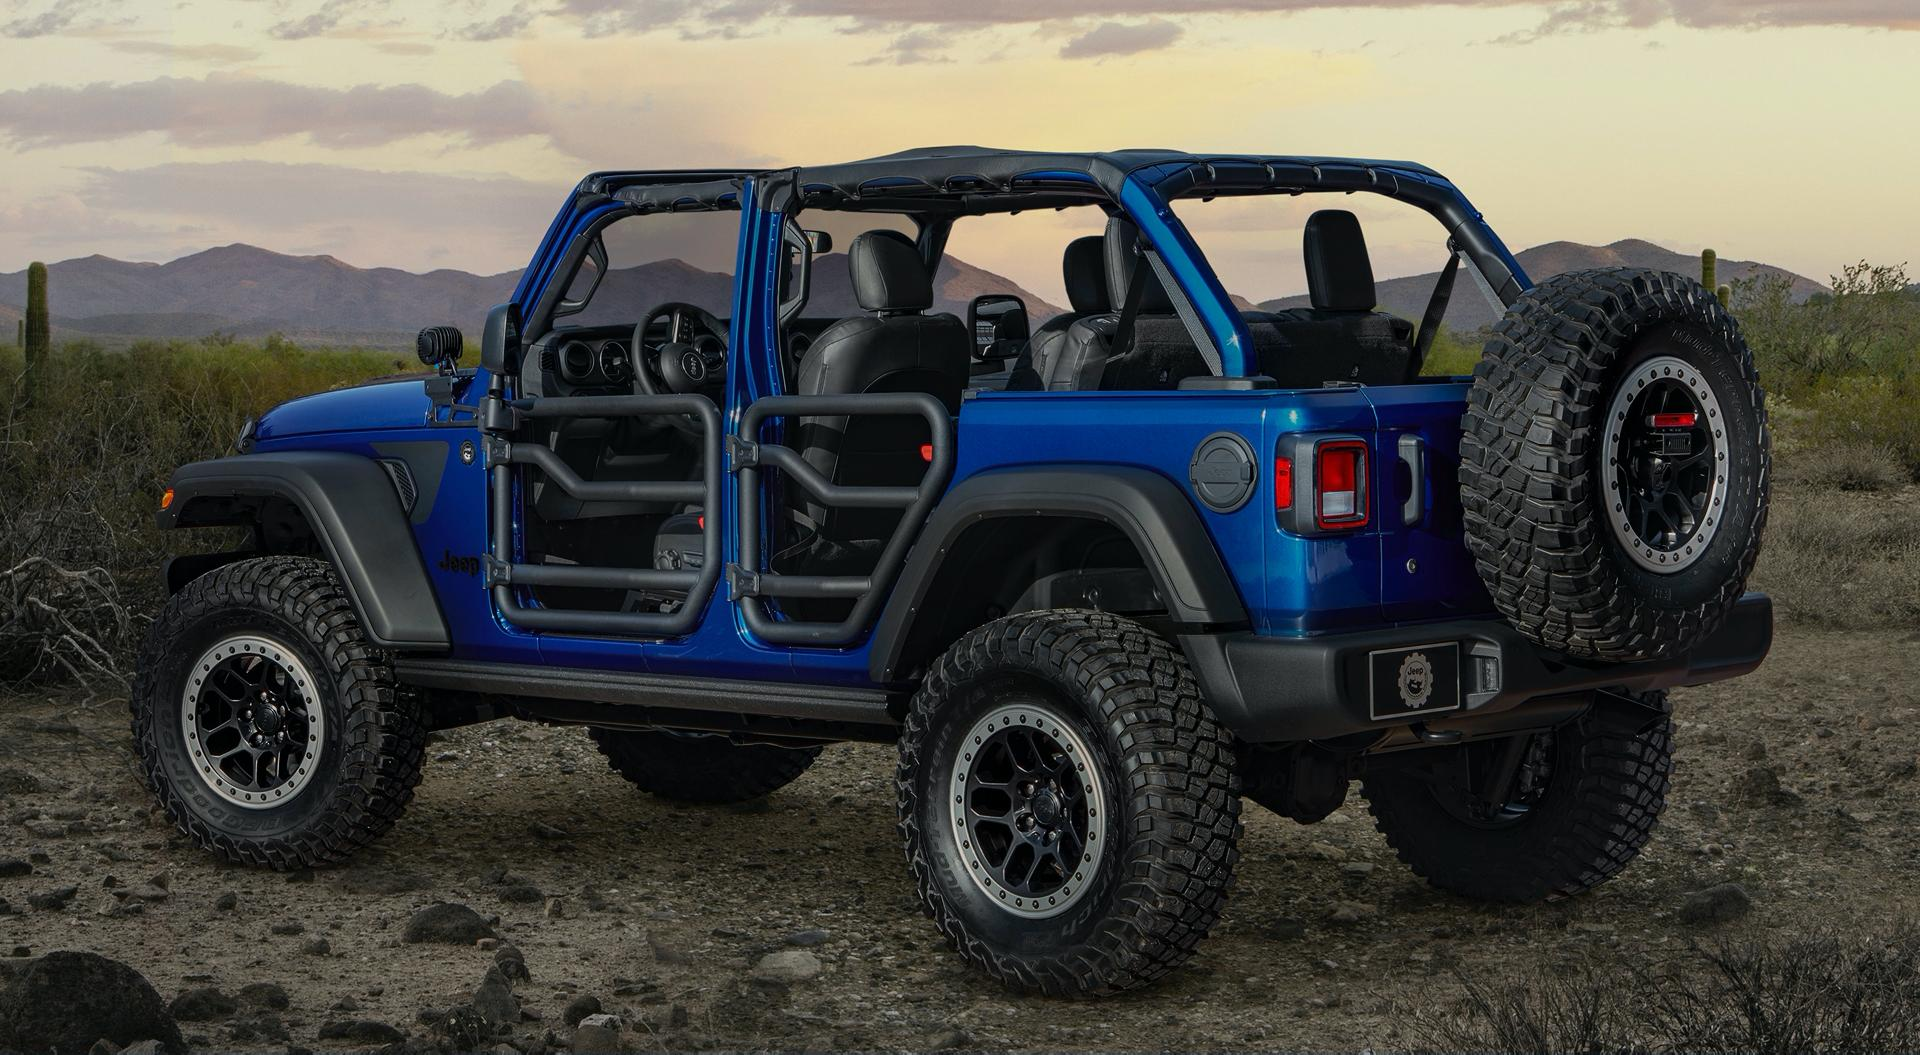 Jeep-Wrangler-JPP-20-Limited-Edition-2